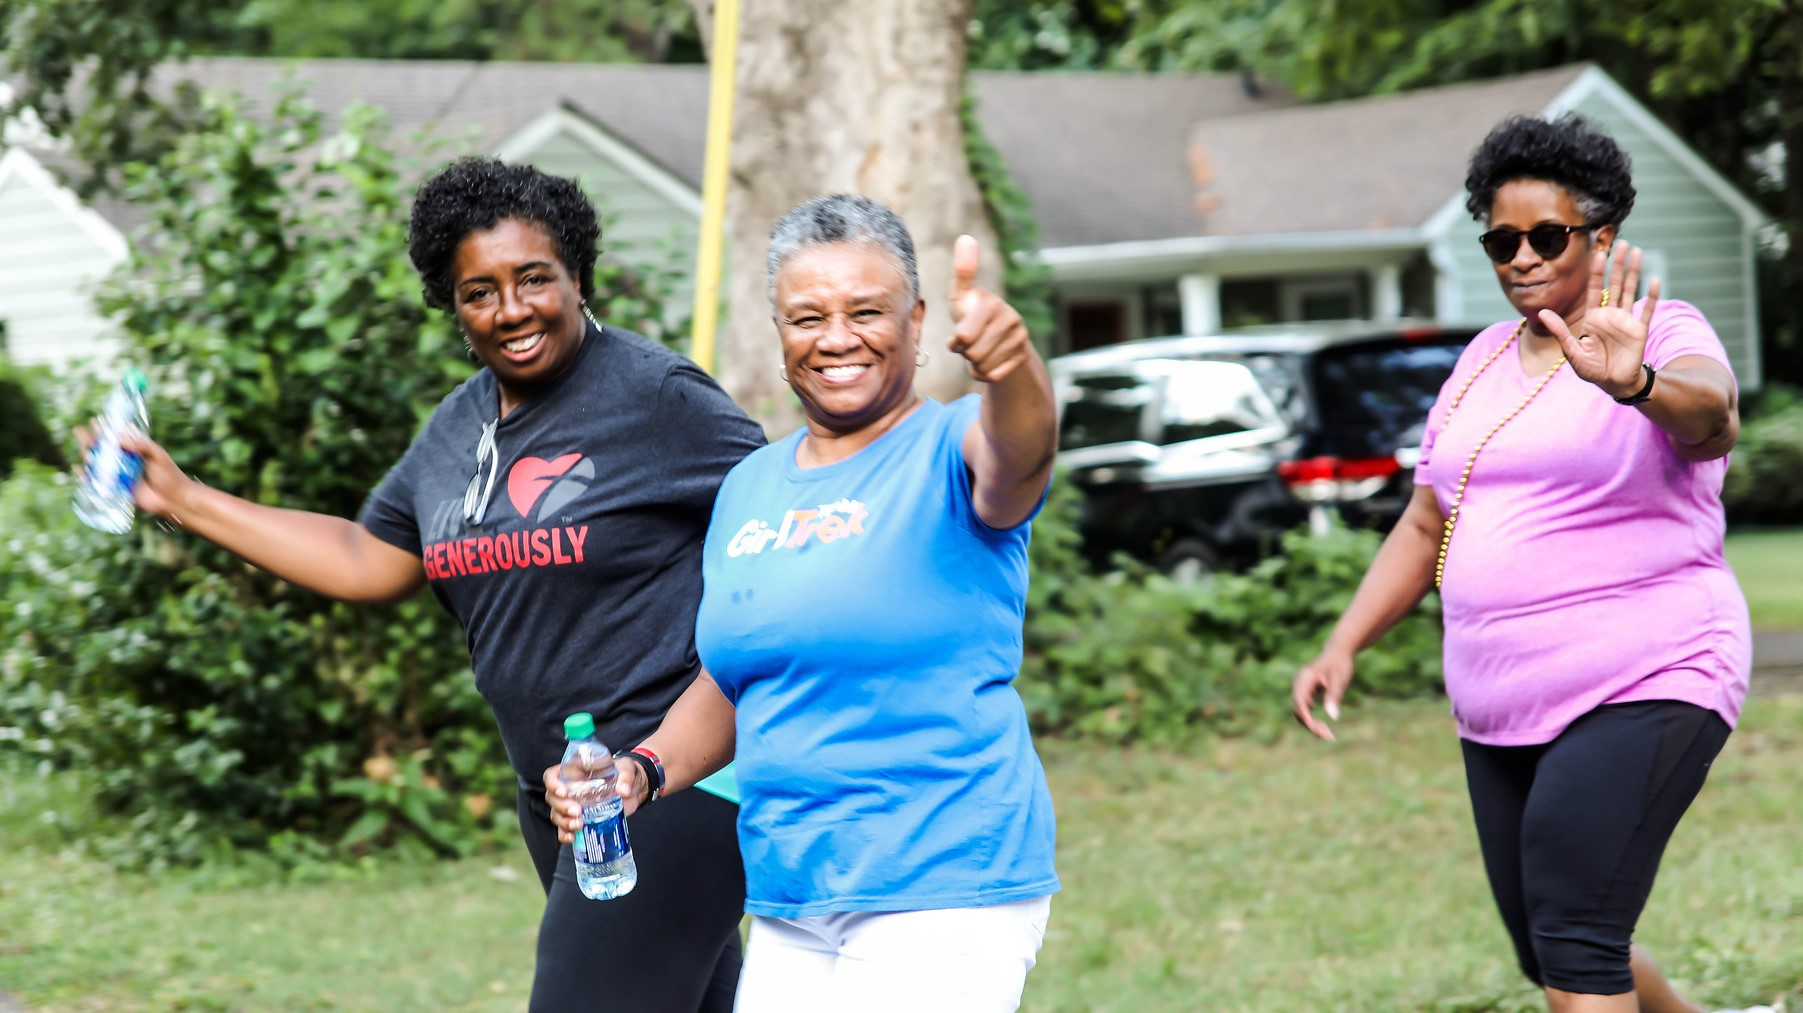 Source: Three older women smiling walking in a neighborhood with GirlTrek. One is giving a thumbs up, the others are waving